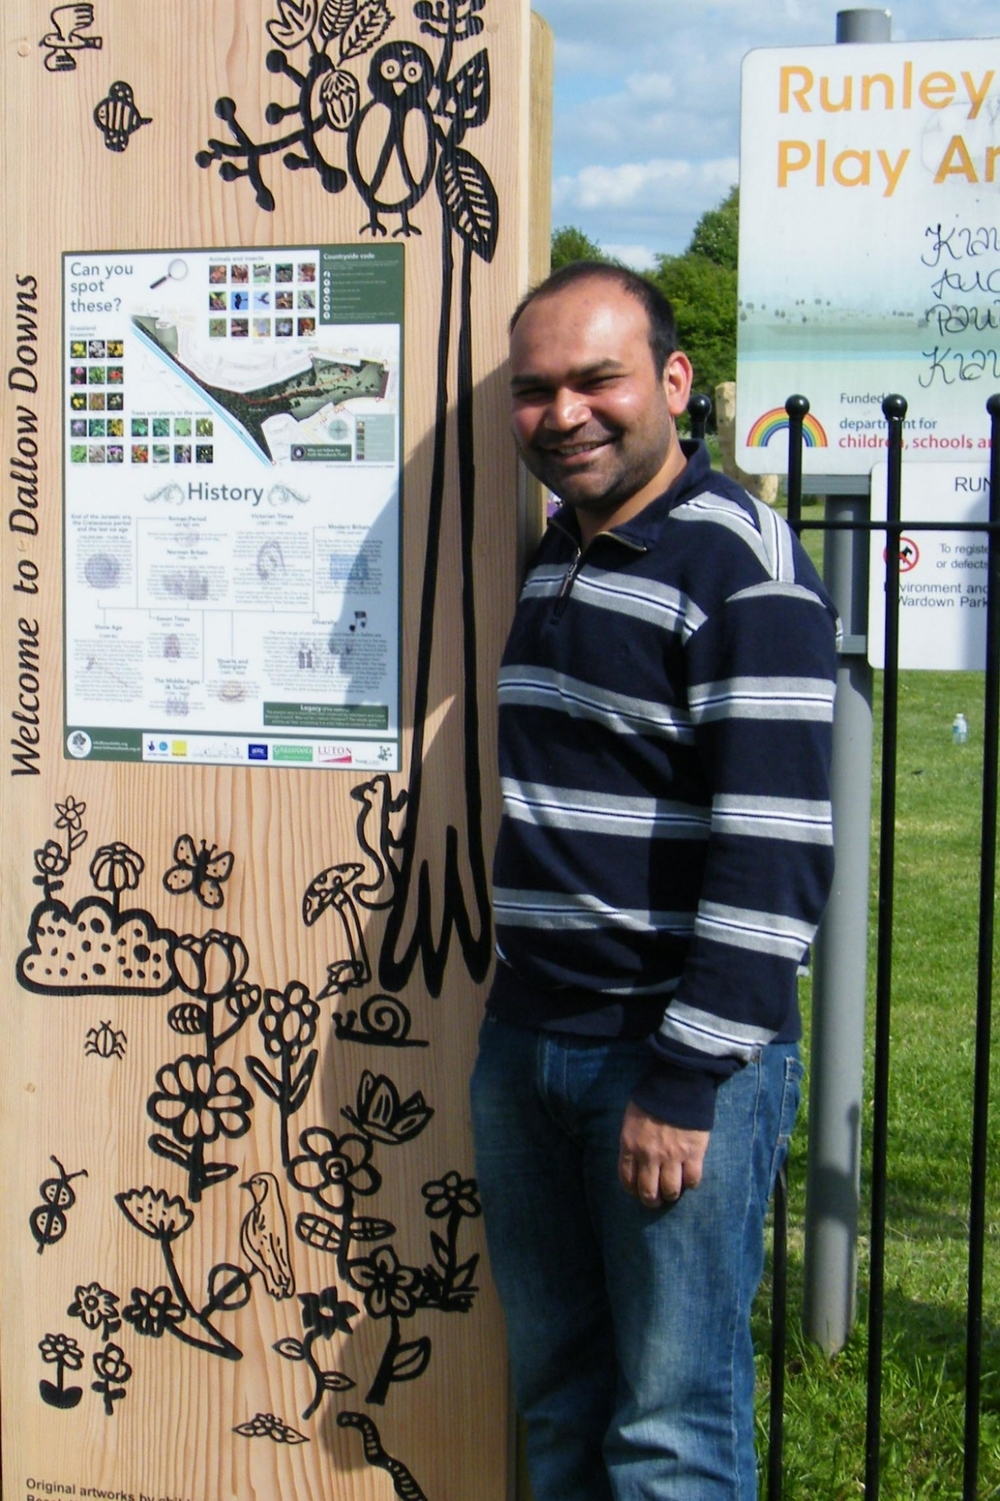 Ryad Khodabocus I am the Community Relations Development Officer, employed by Luton Council of Faiths and working closely with GRASSROOTS. My key focus is in the field of community development and inter-community relations and I have a background in science, social work, health psychology and management. I work with a vast network of individuals and groups and engage with various voluntary and statutory organisations in Luton. I also hold an advisory role with strategic capacity within Luton Borough Council.